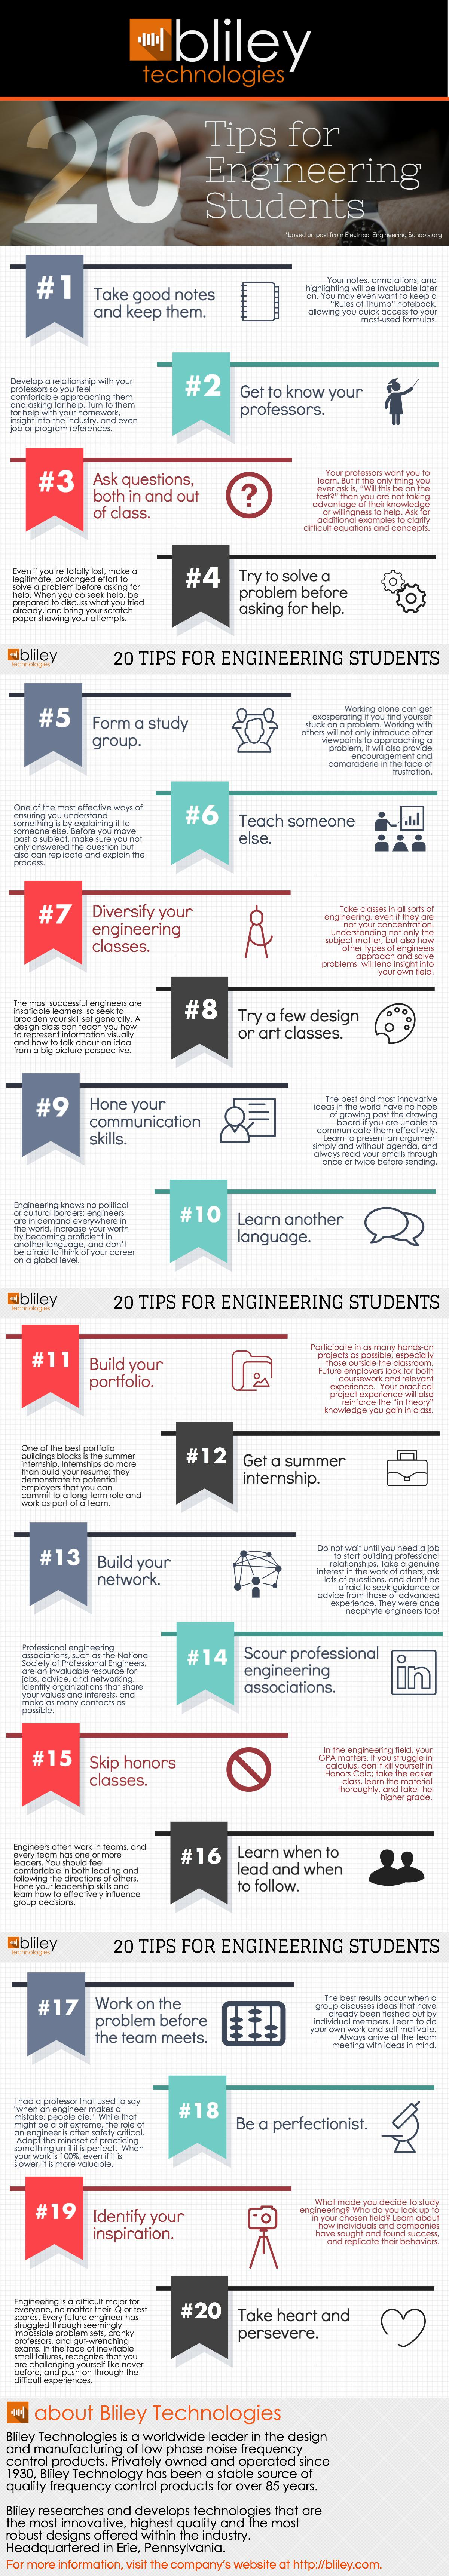 20-tips-for-engineering-students.jpeg